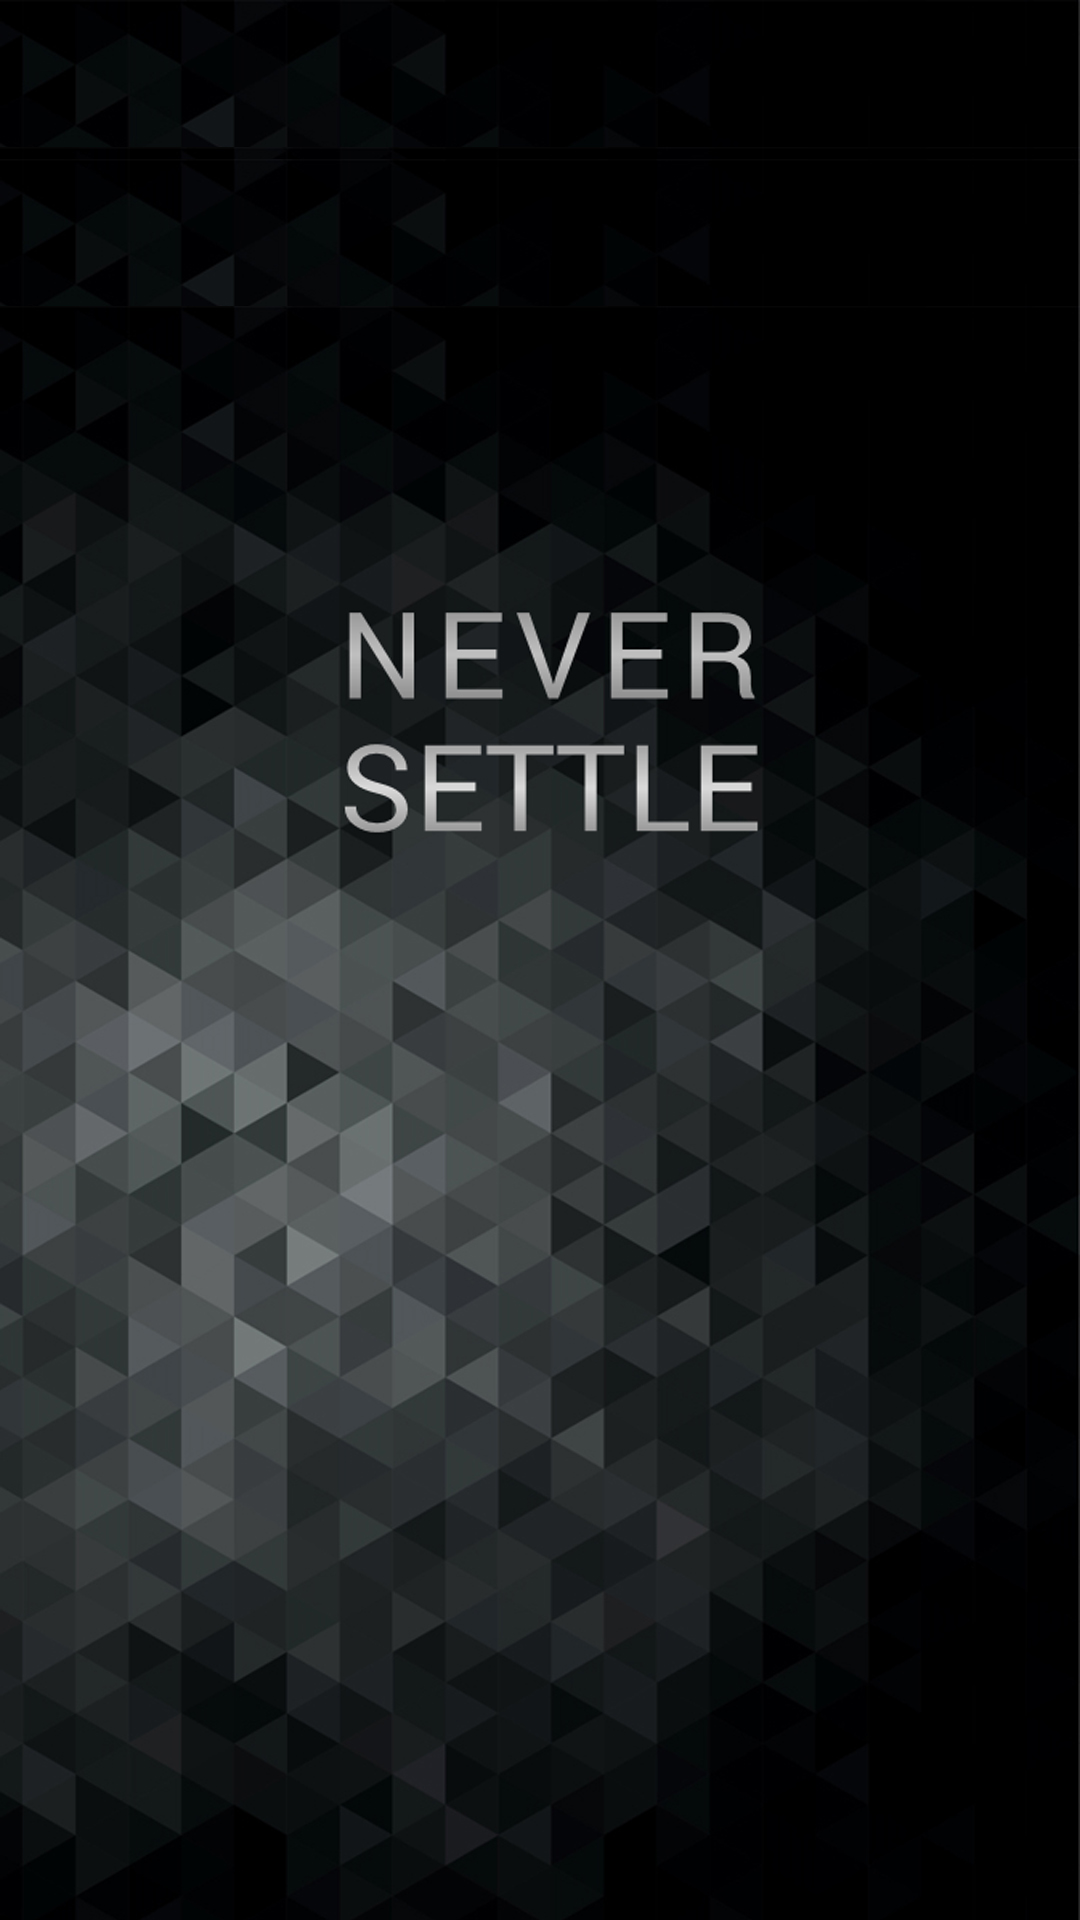 OnePlus-One-Lock-Wall-Black-Tap-to-see-more-One-Plus-Never-Settle-stock-for-your-iPhon-wallpaper-wpc9207775